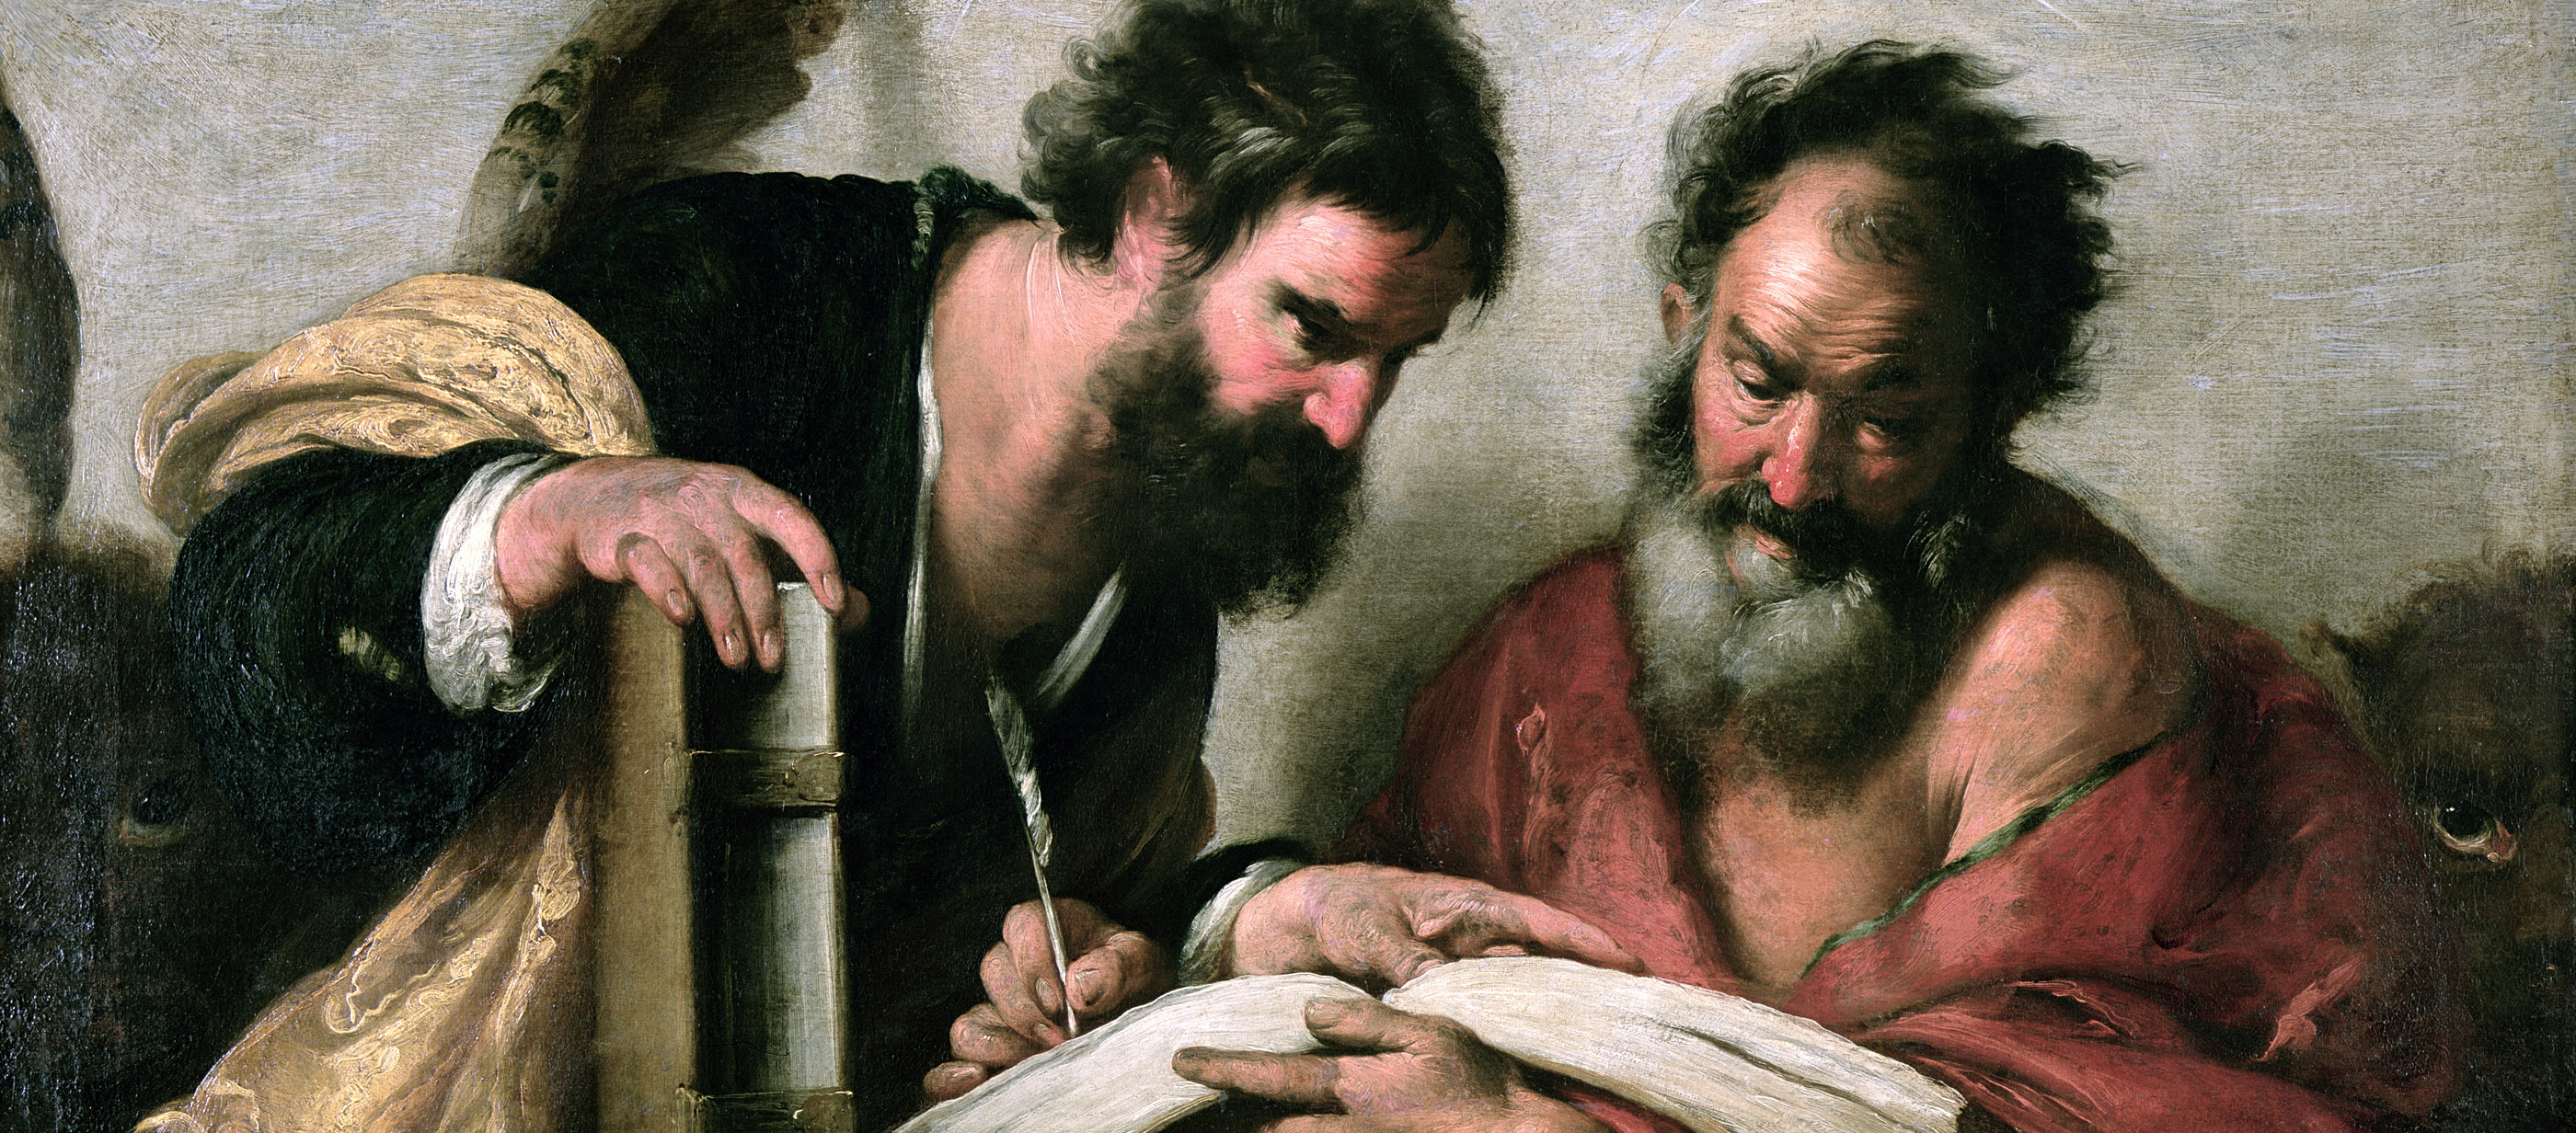 St. Mark and St. John in Consultation on their Writings, by Bernardo Strozzi, c. 1610.